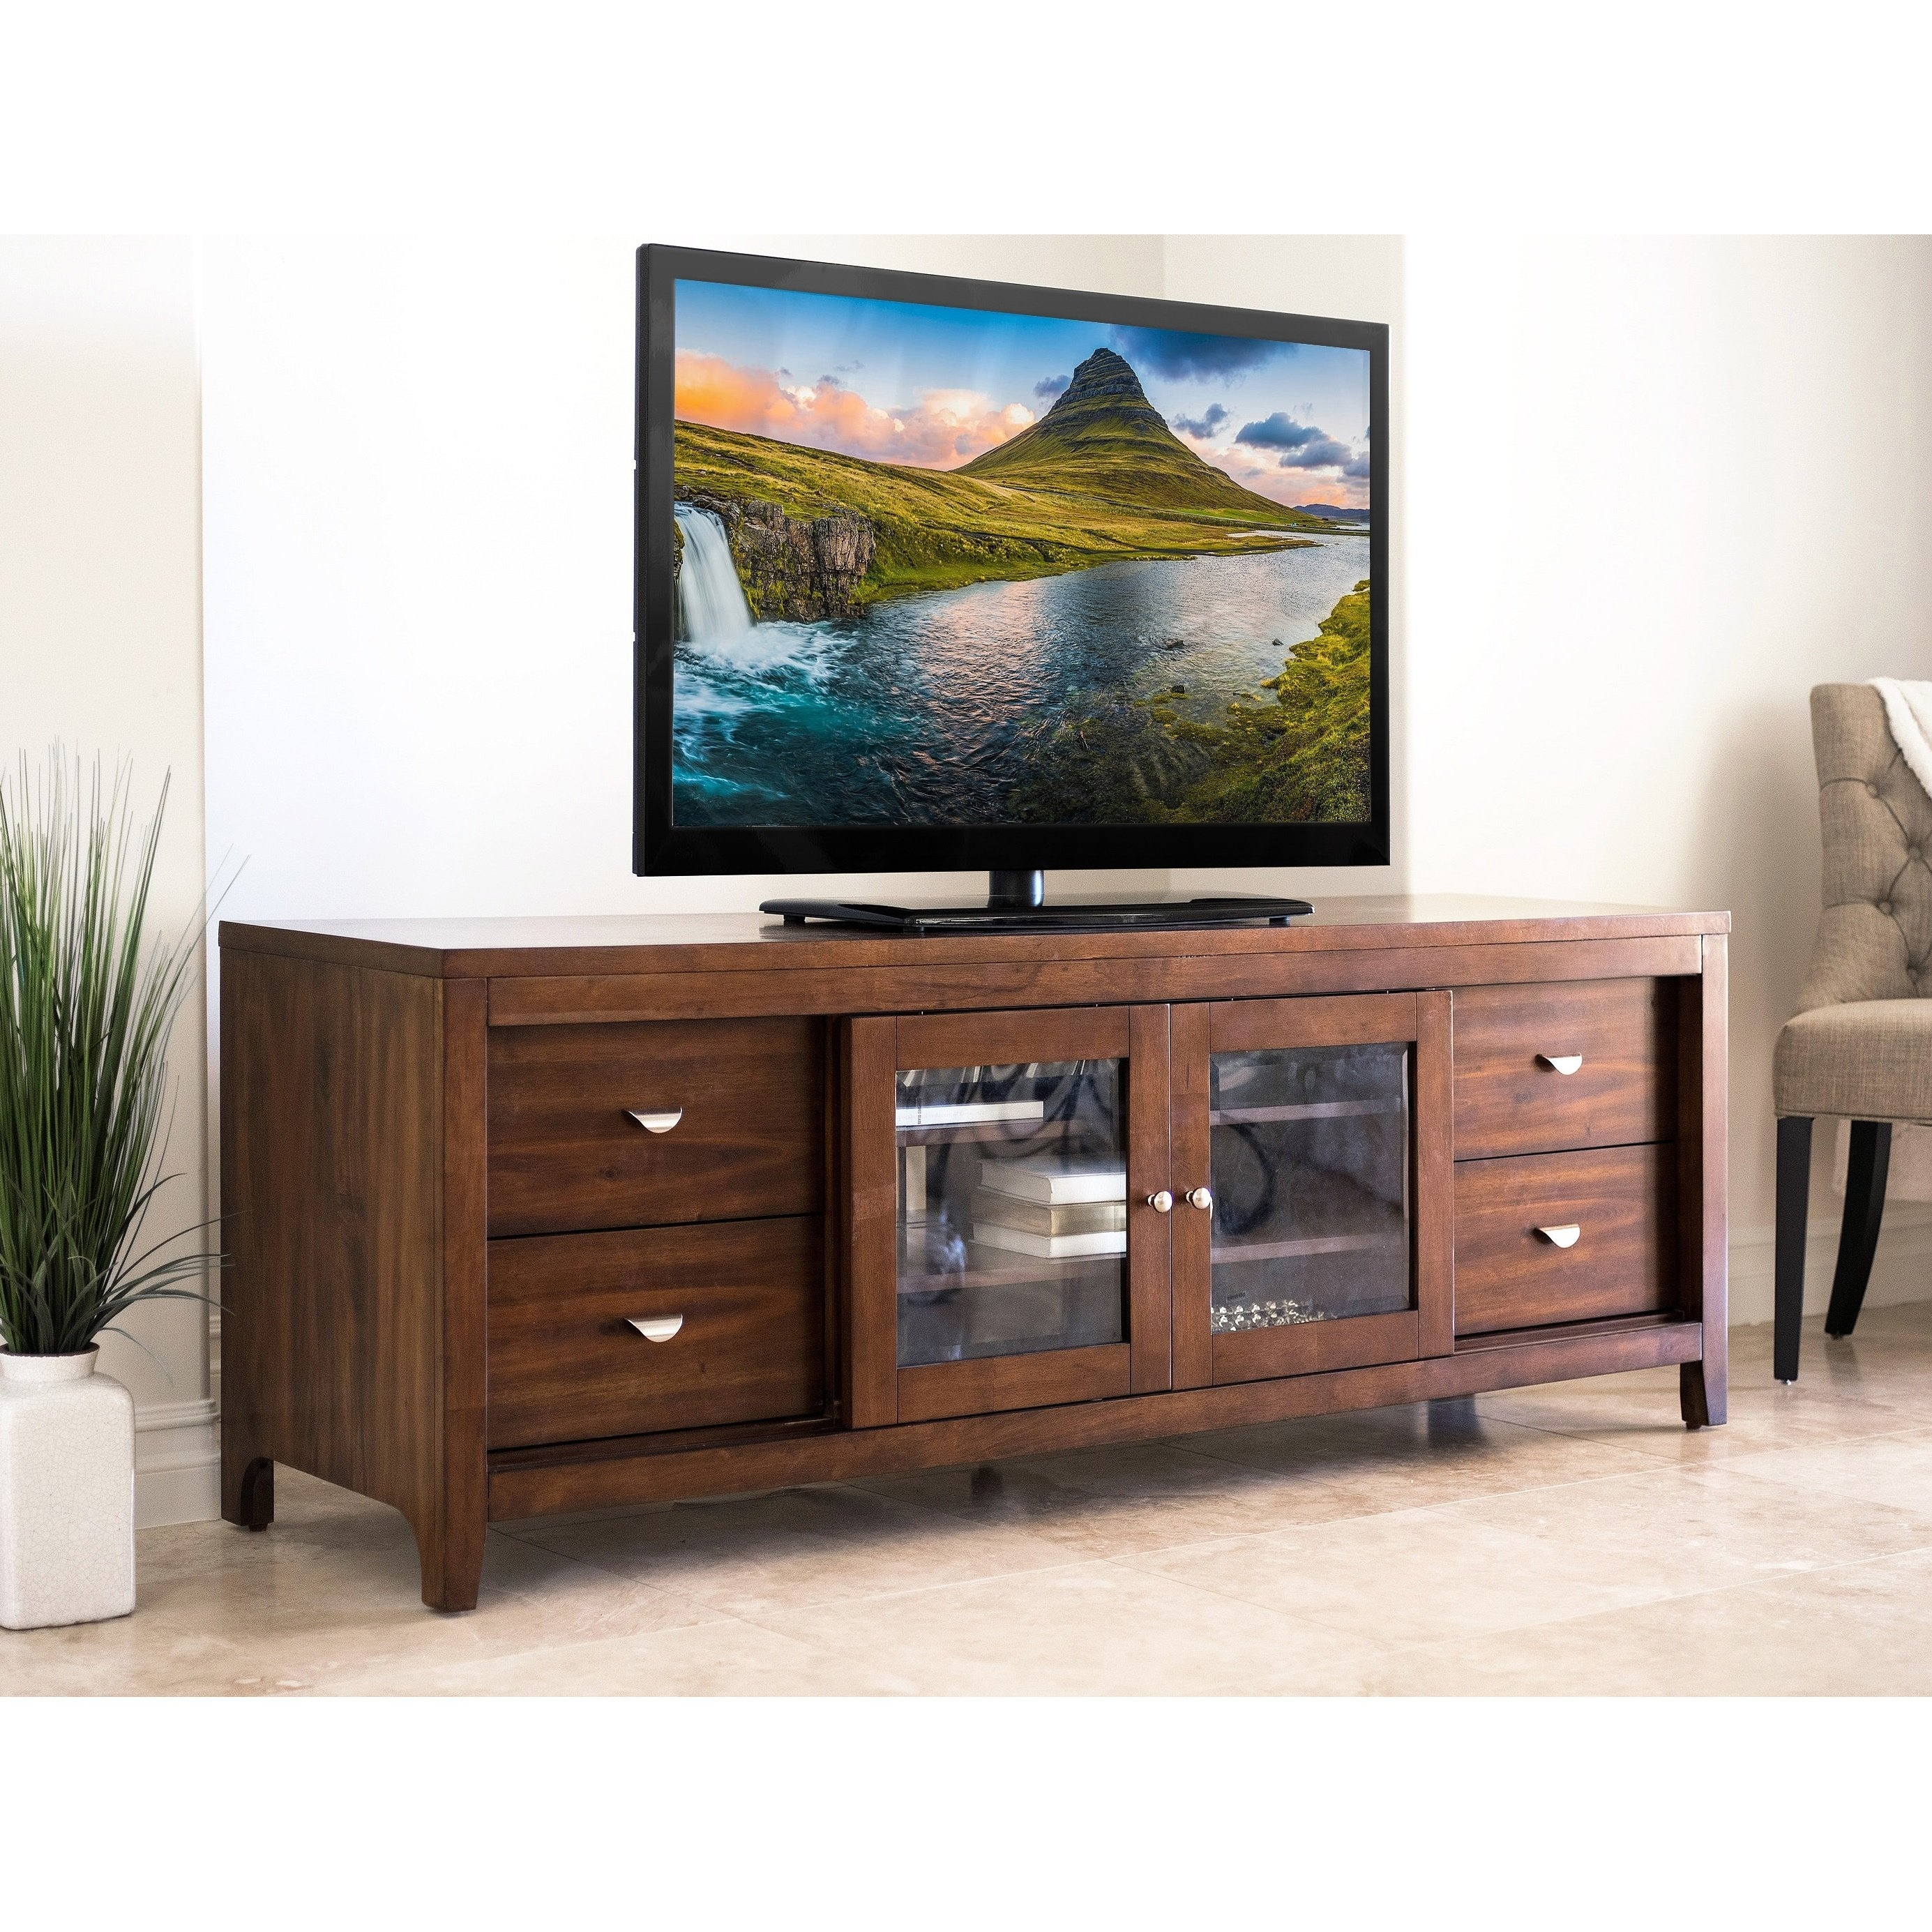 Shop Abbyson Clarkston Solid Wood 72-Inch Tv Console - On Sale throughout Brown Wood 72 Inch Sideboards (Image 22 of 30)